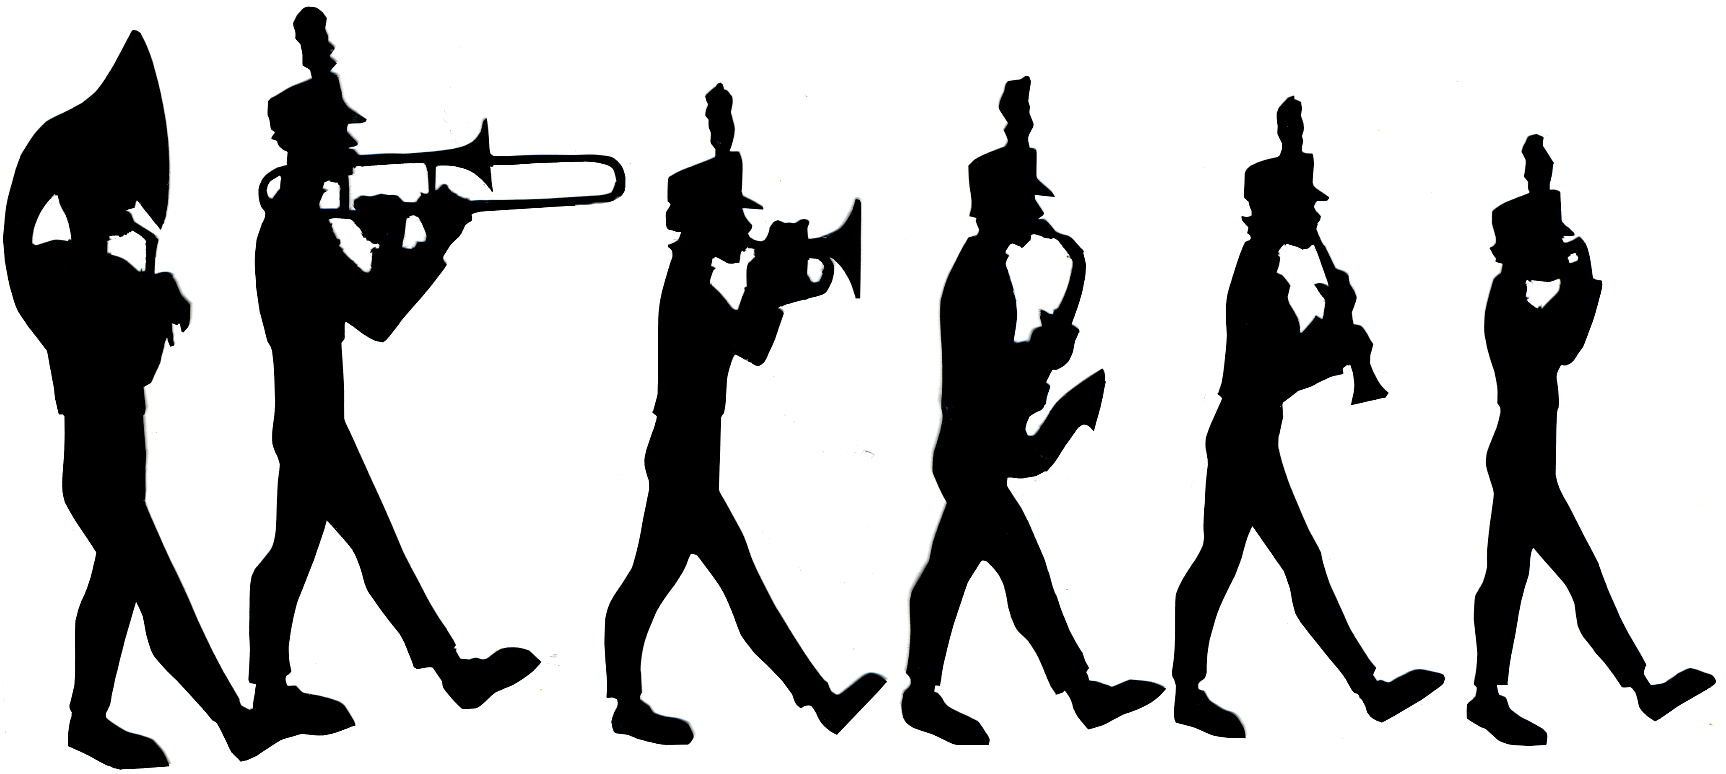 marching band clipart silhouette at getdrawings com free for rh getdrawings com marching band clip art images marching band clipart images